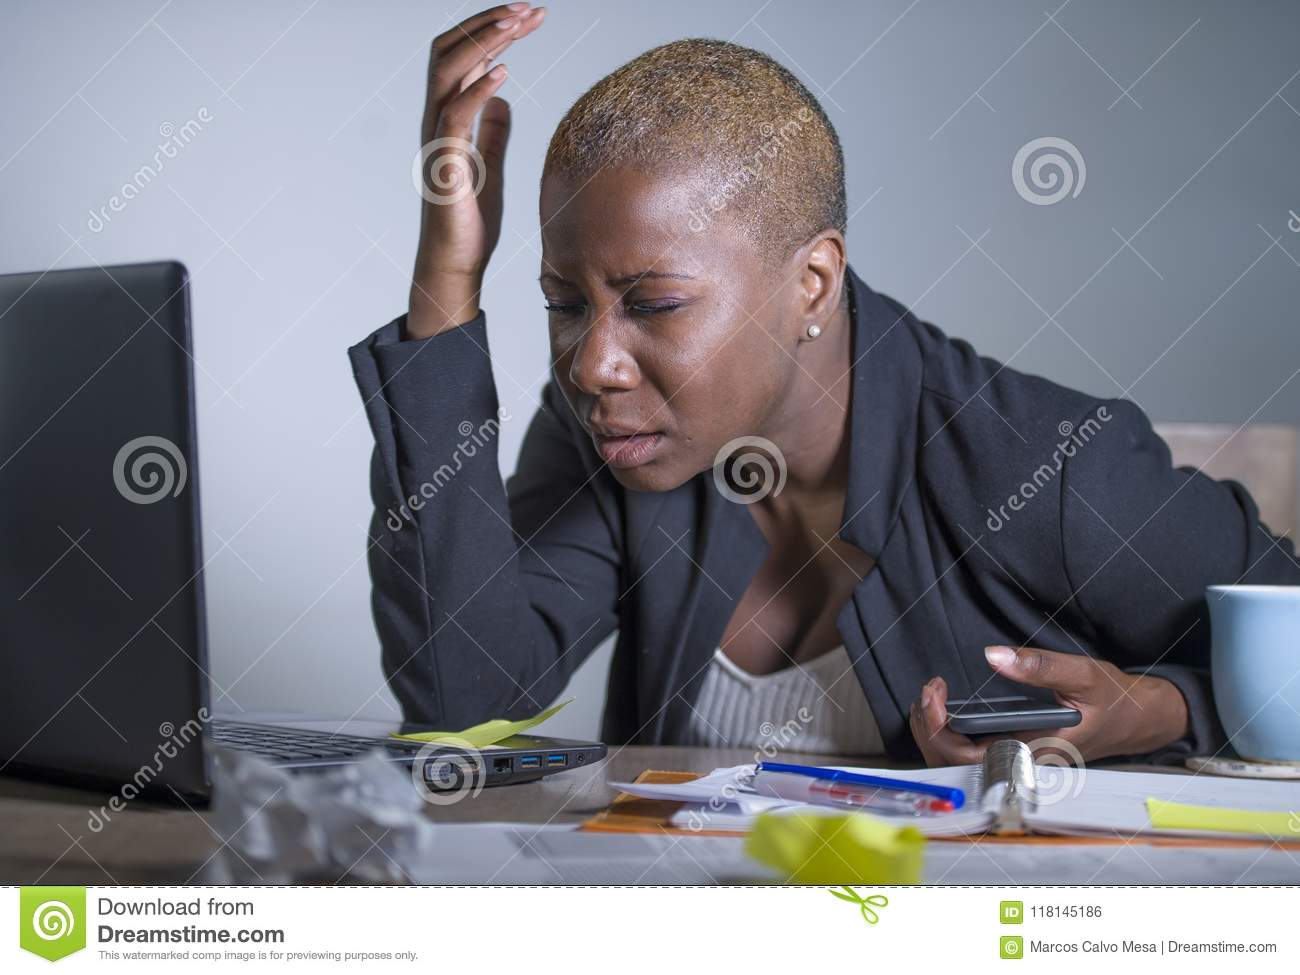 Download Young Desperate And Stressed African American Business Woman Working At Laptop Computer Desk At Office Suffering Stress Problem Us Stock Photo - Image of desk, computer: 118145186